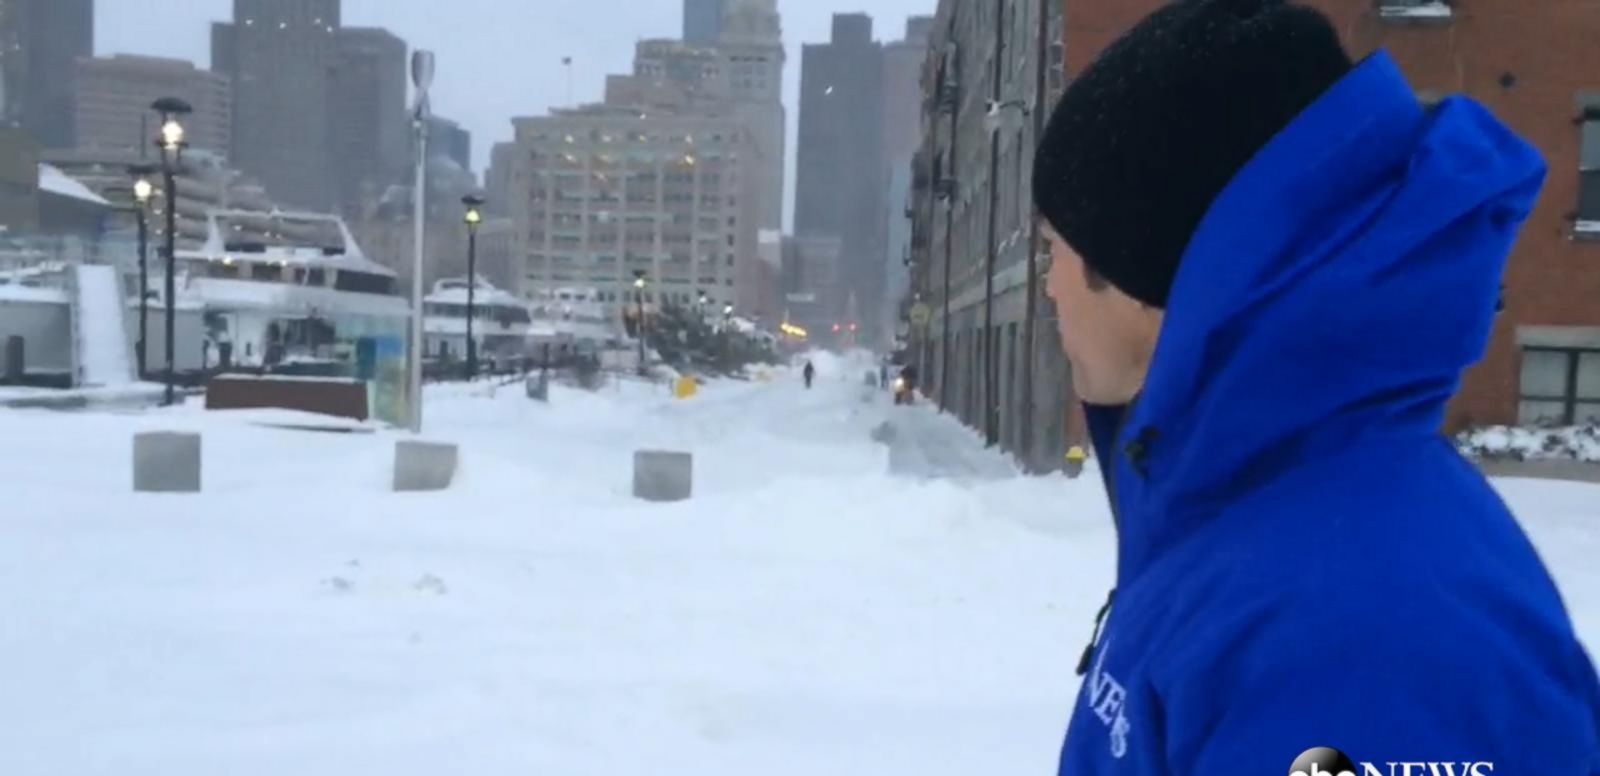 VIDEO: ABC News GoStream - Blizzard Dumps Roughly 2 Feet of Snow on Boston